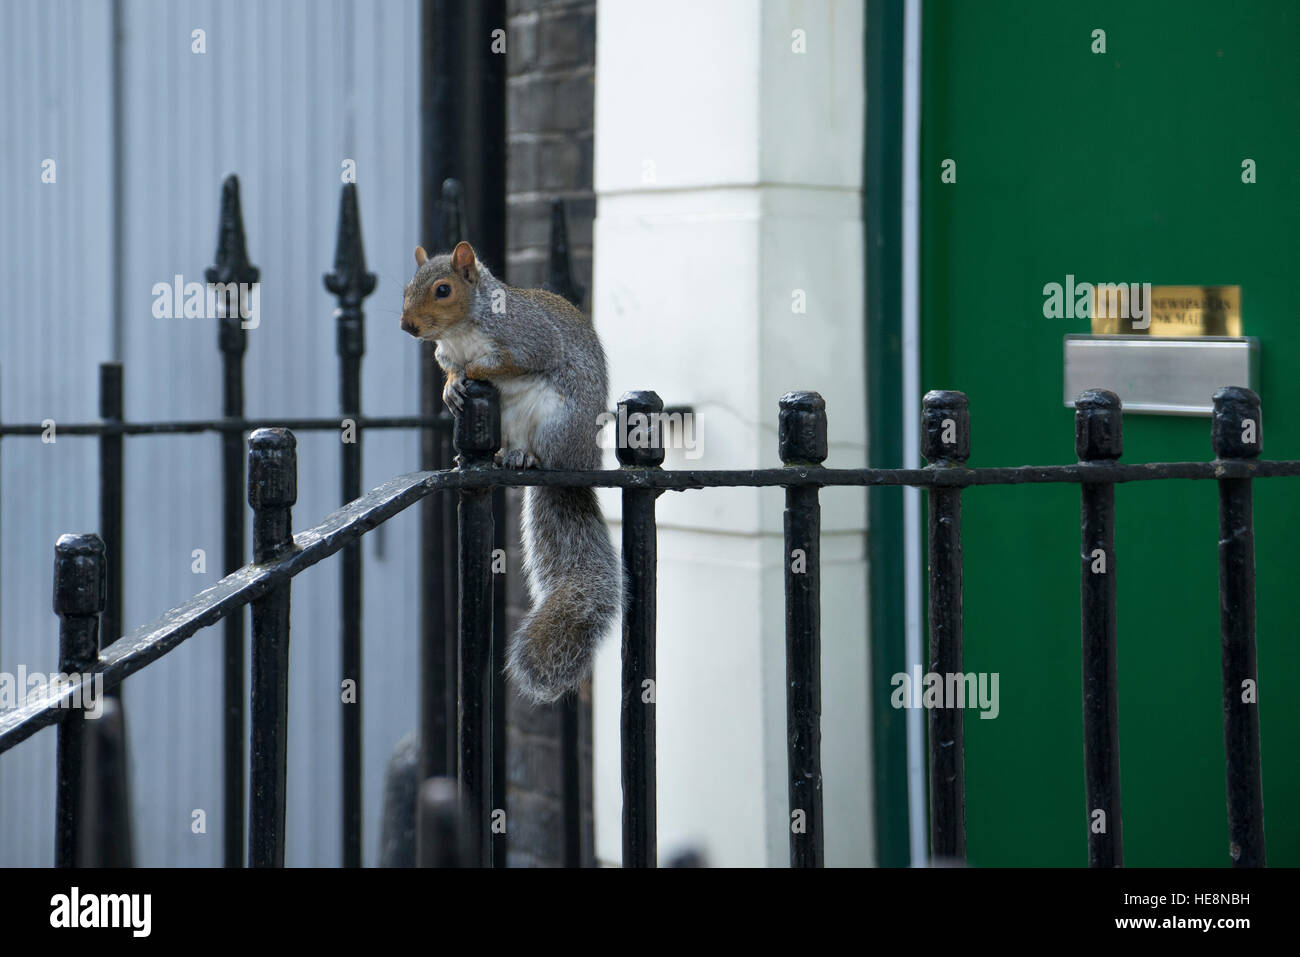 Grey squirrel sitting on railings in Camden Town, London, England - Stock Image